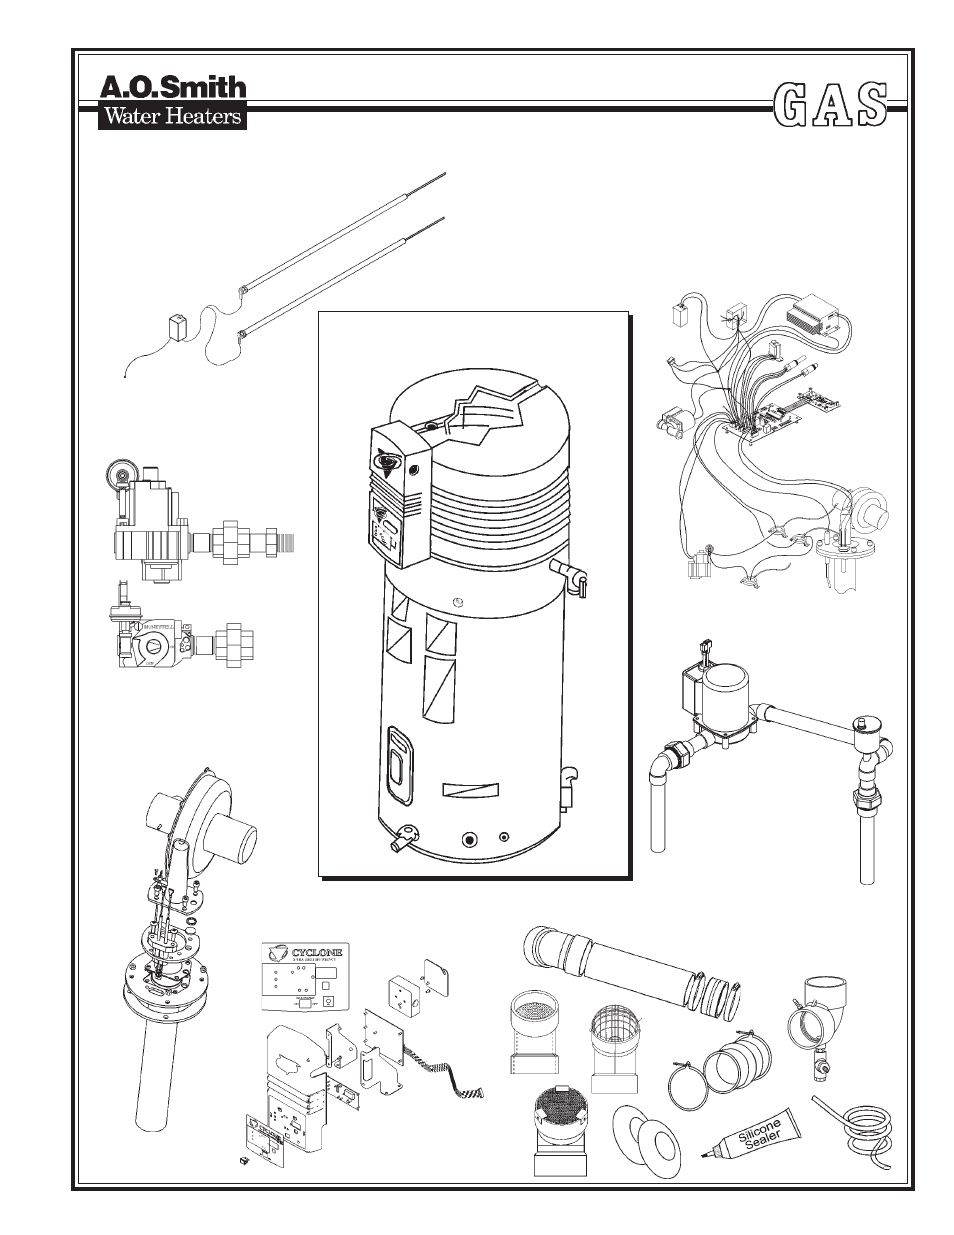 Tankless Wiring Diagram further Challenger Blower Resistor Location in addition 1958 Buick Heater Air Conditioner together with Patio  fort Pc02 Outdoor Patio Heater Parts C 195473 195474 195476 also 77 Corvette Headlight Switch Wiring Diagram. on heater gas valve wiring diagram